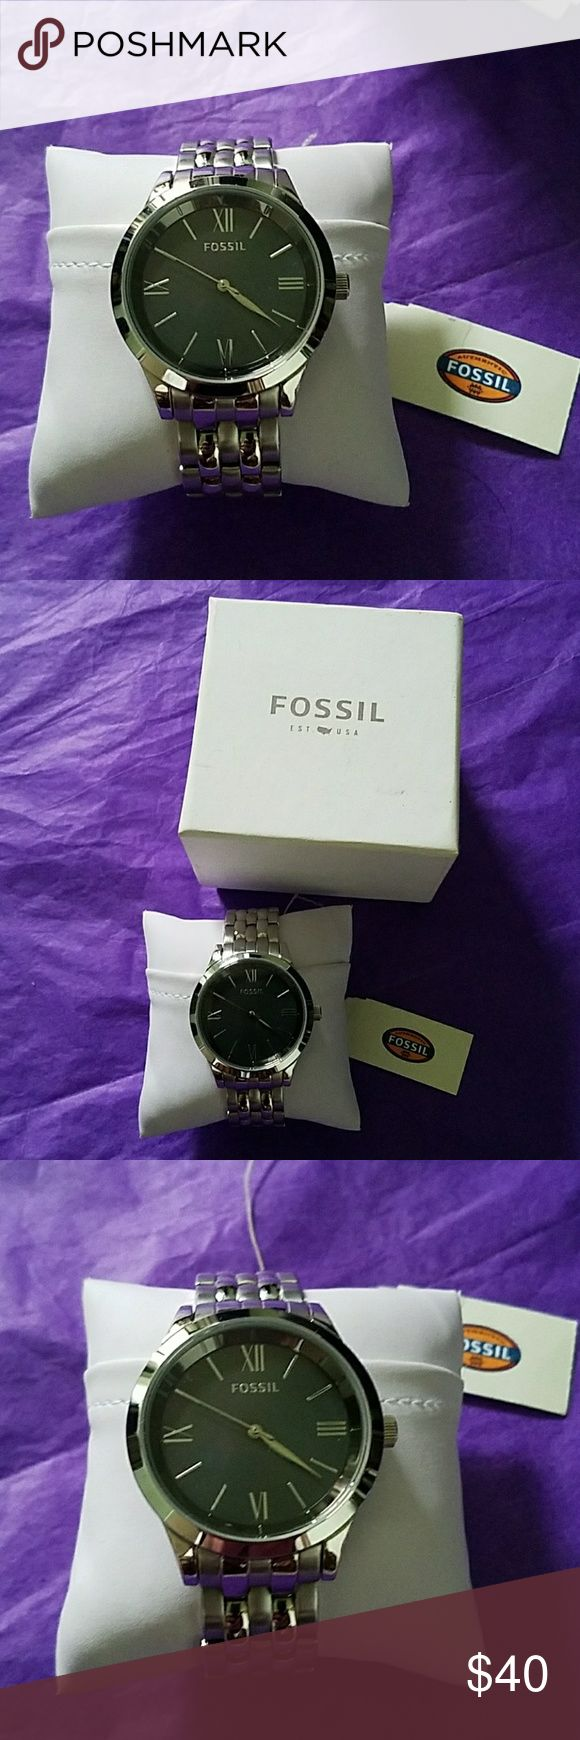 Authentic Fossil Ainsley Watch Brand new, worn once. Authentic Fossil Ainsley Silver Stainless Steel Mineral Quartz Watch BQ1758, 38MM Mother of Pearl Dial/Case. Needs a new battery, you can take any Fossil, MK & Relic watches to any Fossil Store or Outlet for a cheaper price in a battery replaced & for adding or removing any links..they will do that for free! MSRP $135 (FINAL PRICE) Fossil Accessories Watches